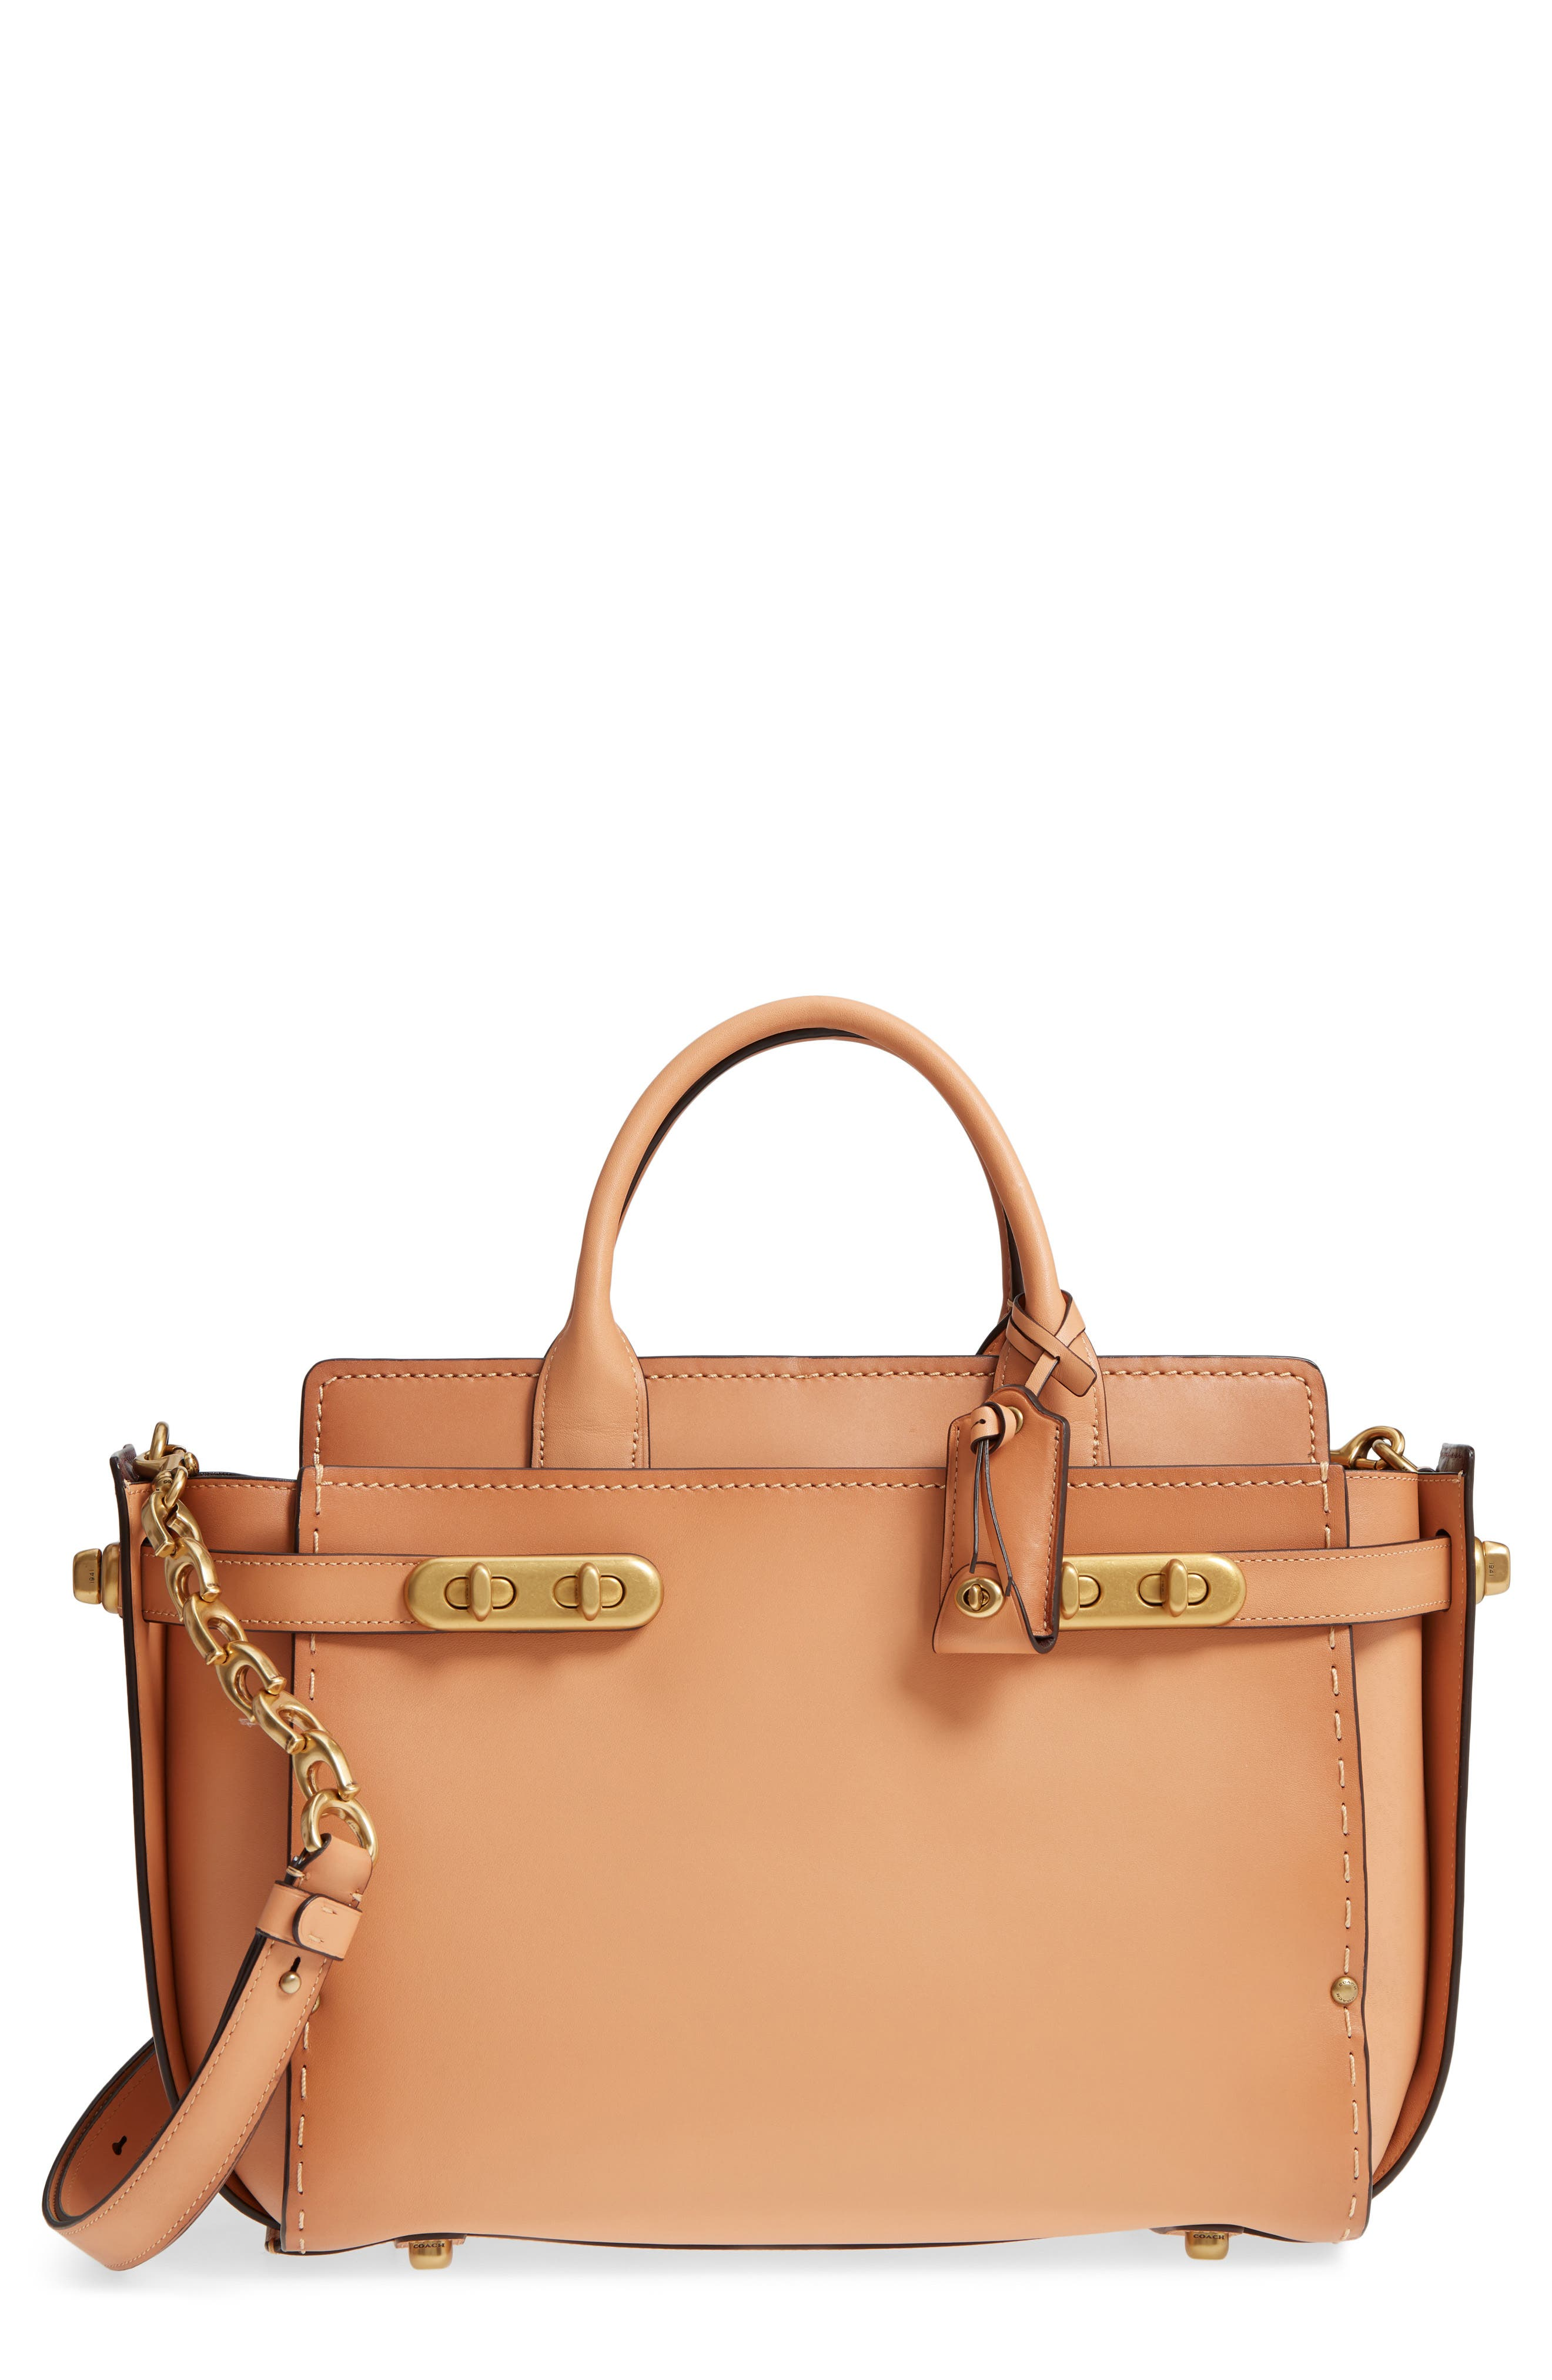 Double Swagger Leather Satchel,                             Main thumbnail 1, color,